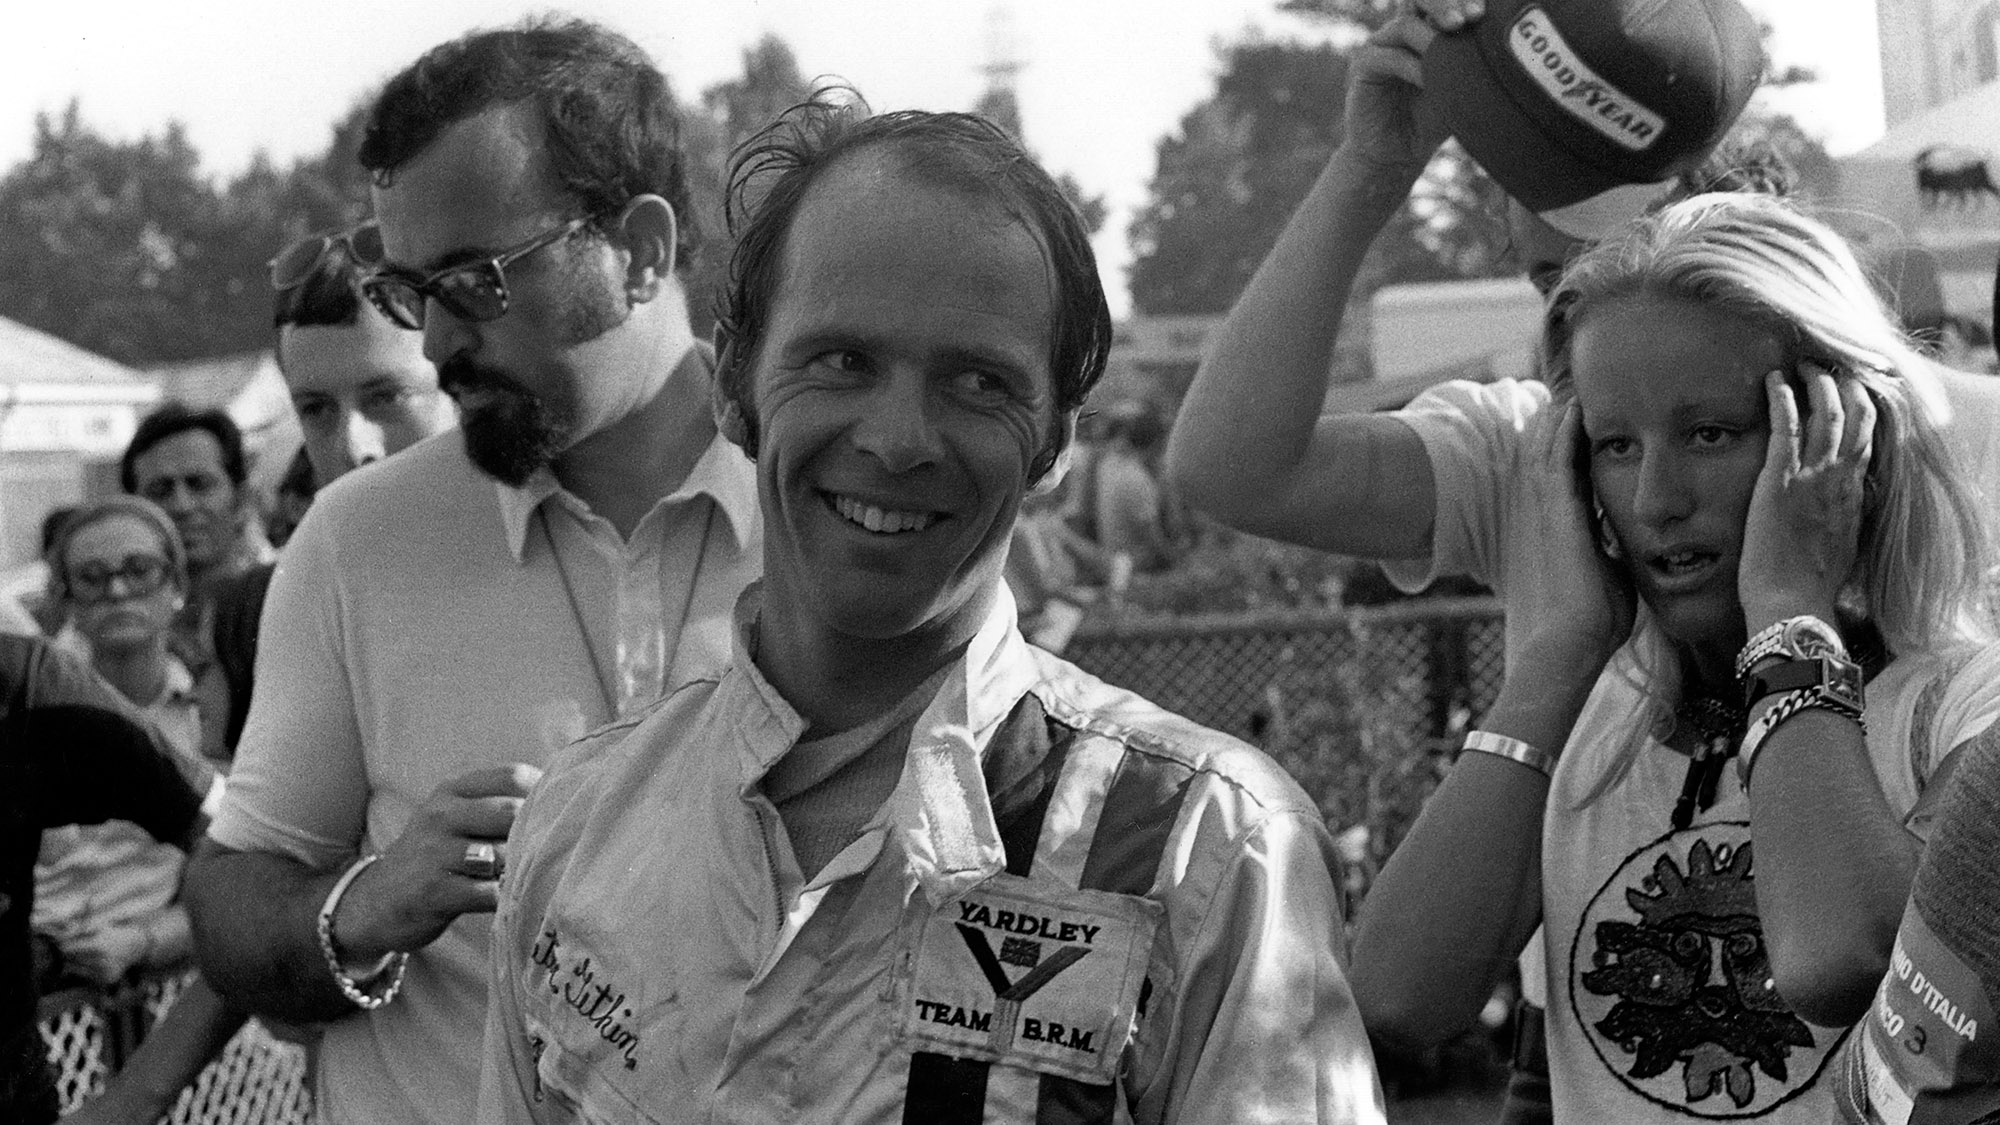 Peter Gethin after winning the 1971 Italian Grand Prix at Monza